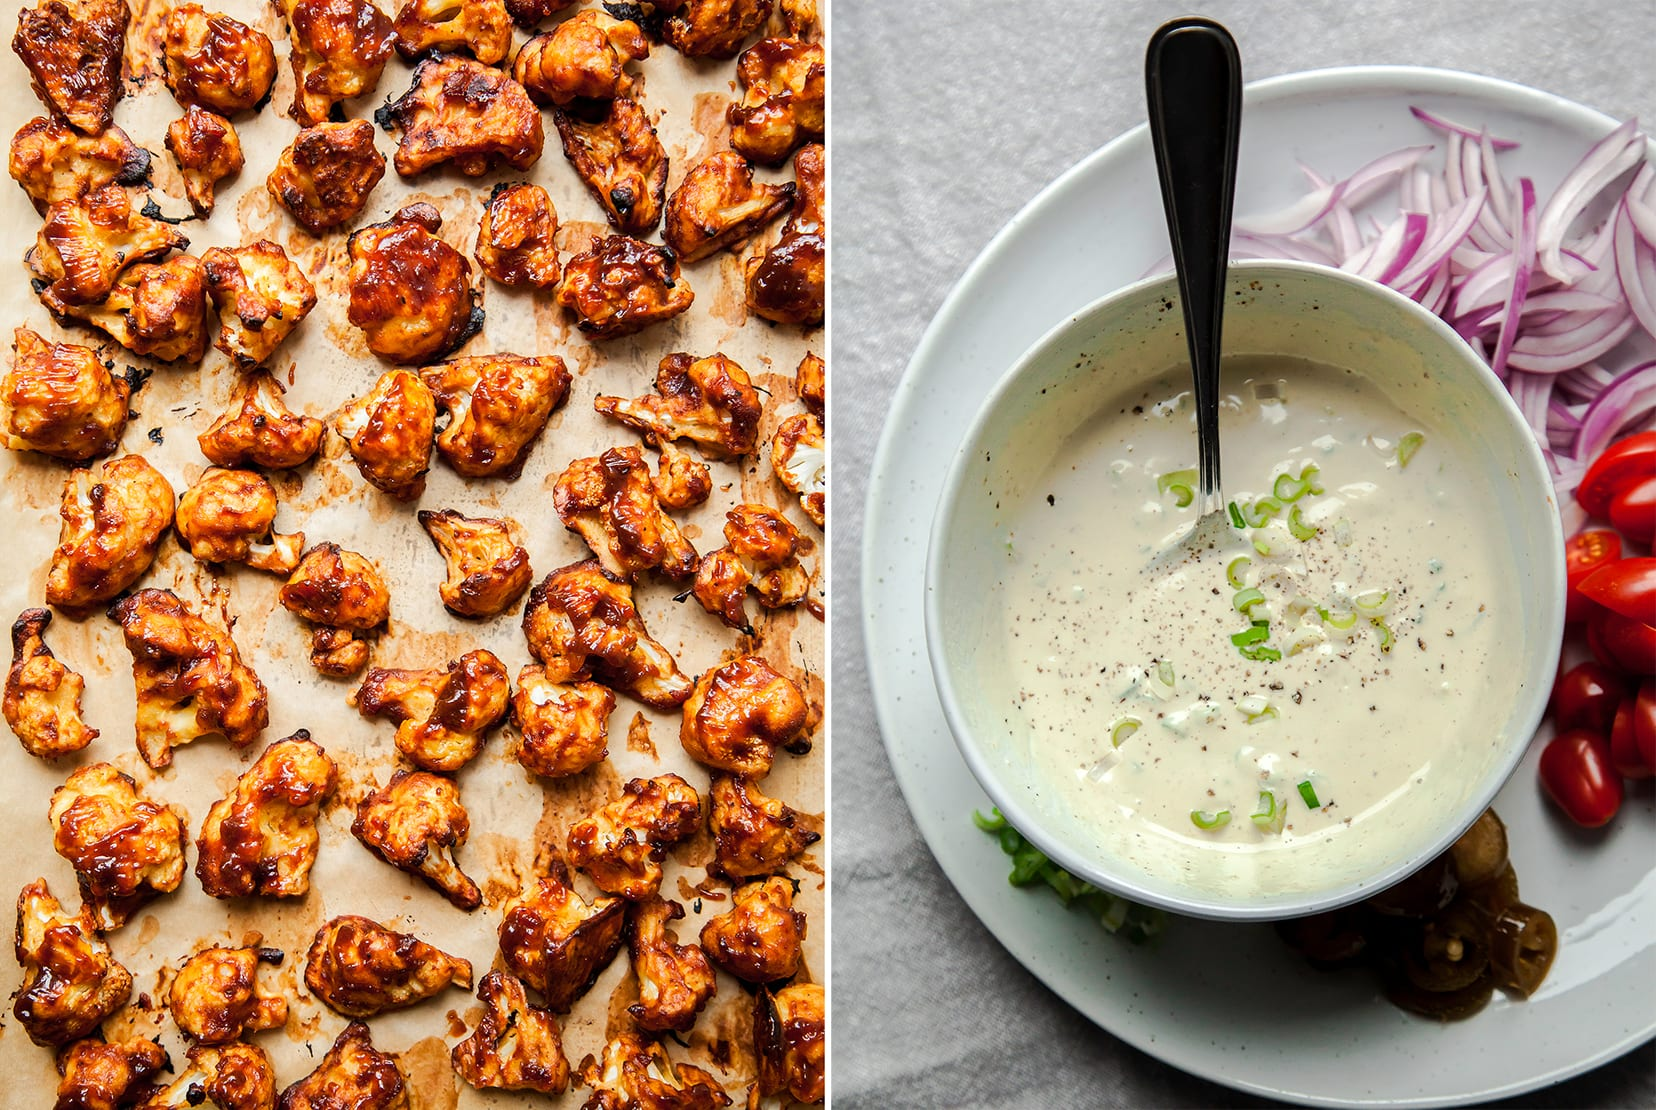 Image shows a tray of BBQ cauliflower and a second image of a bowl of creamy dressing.